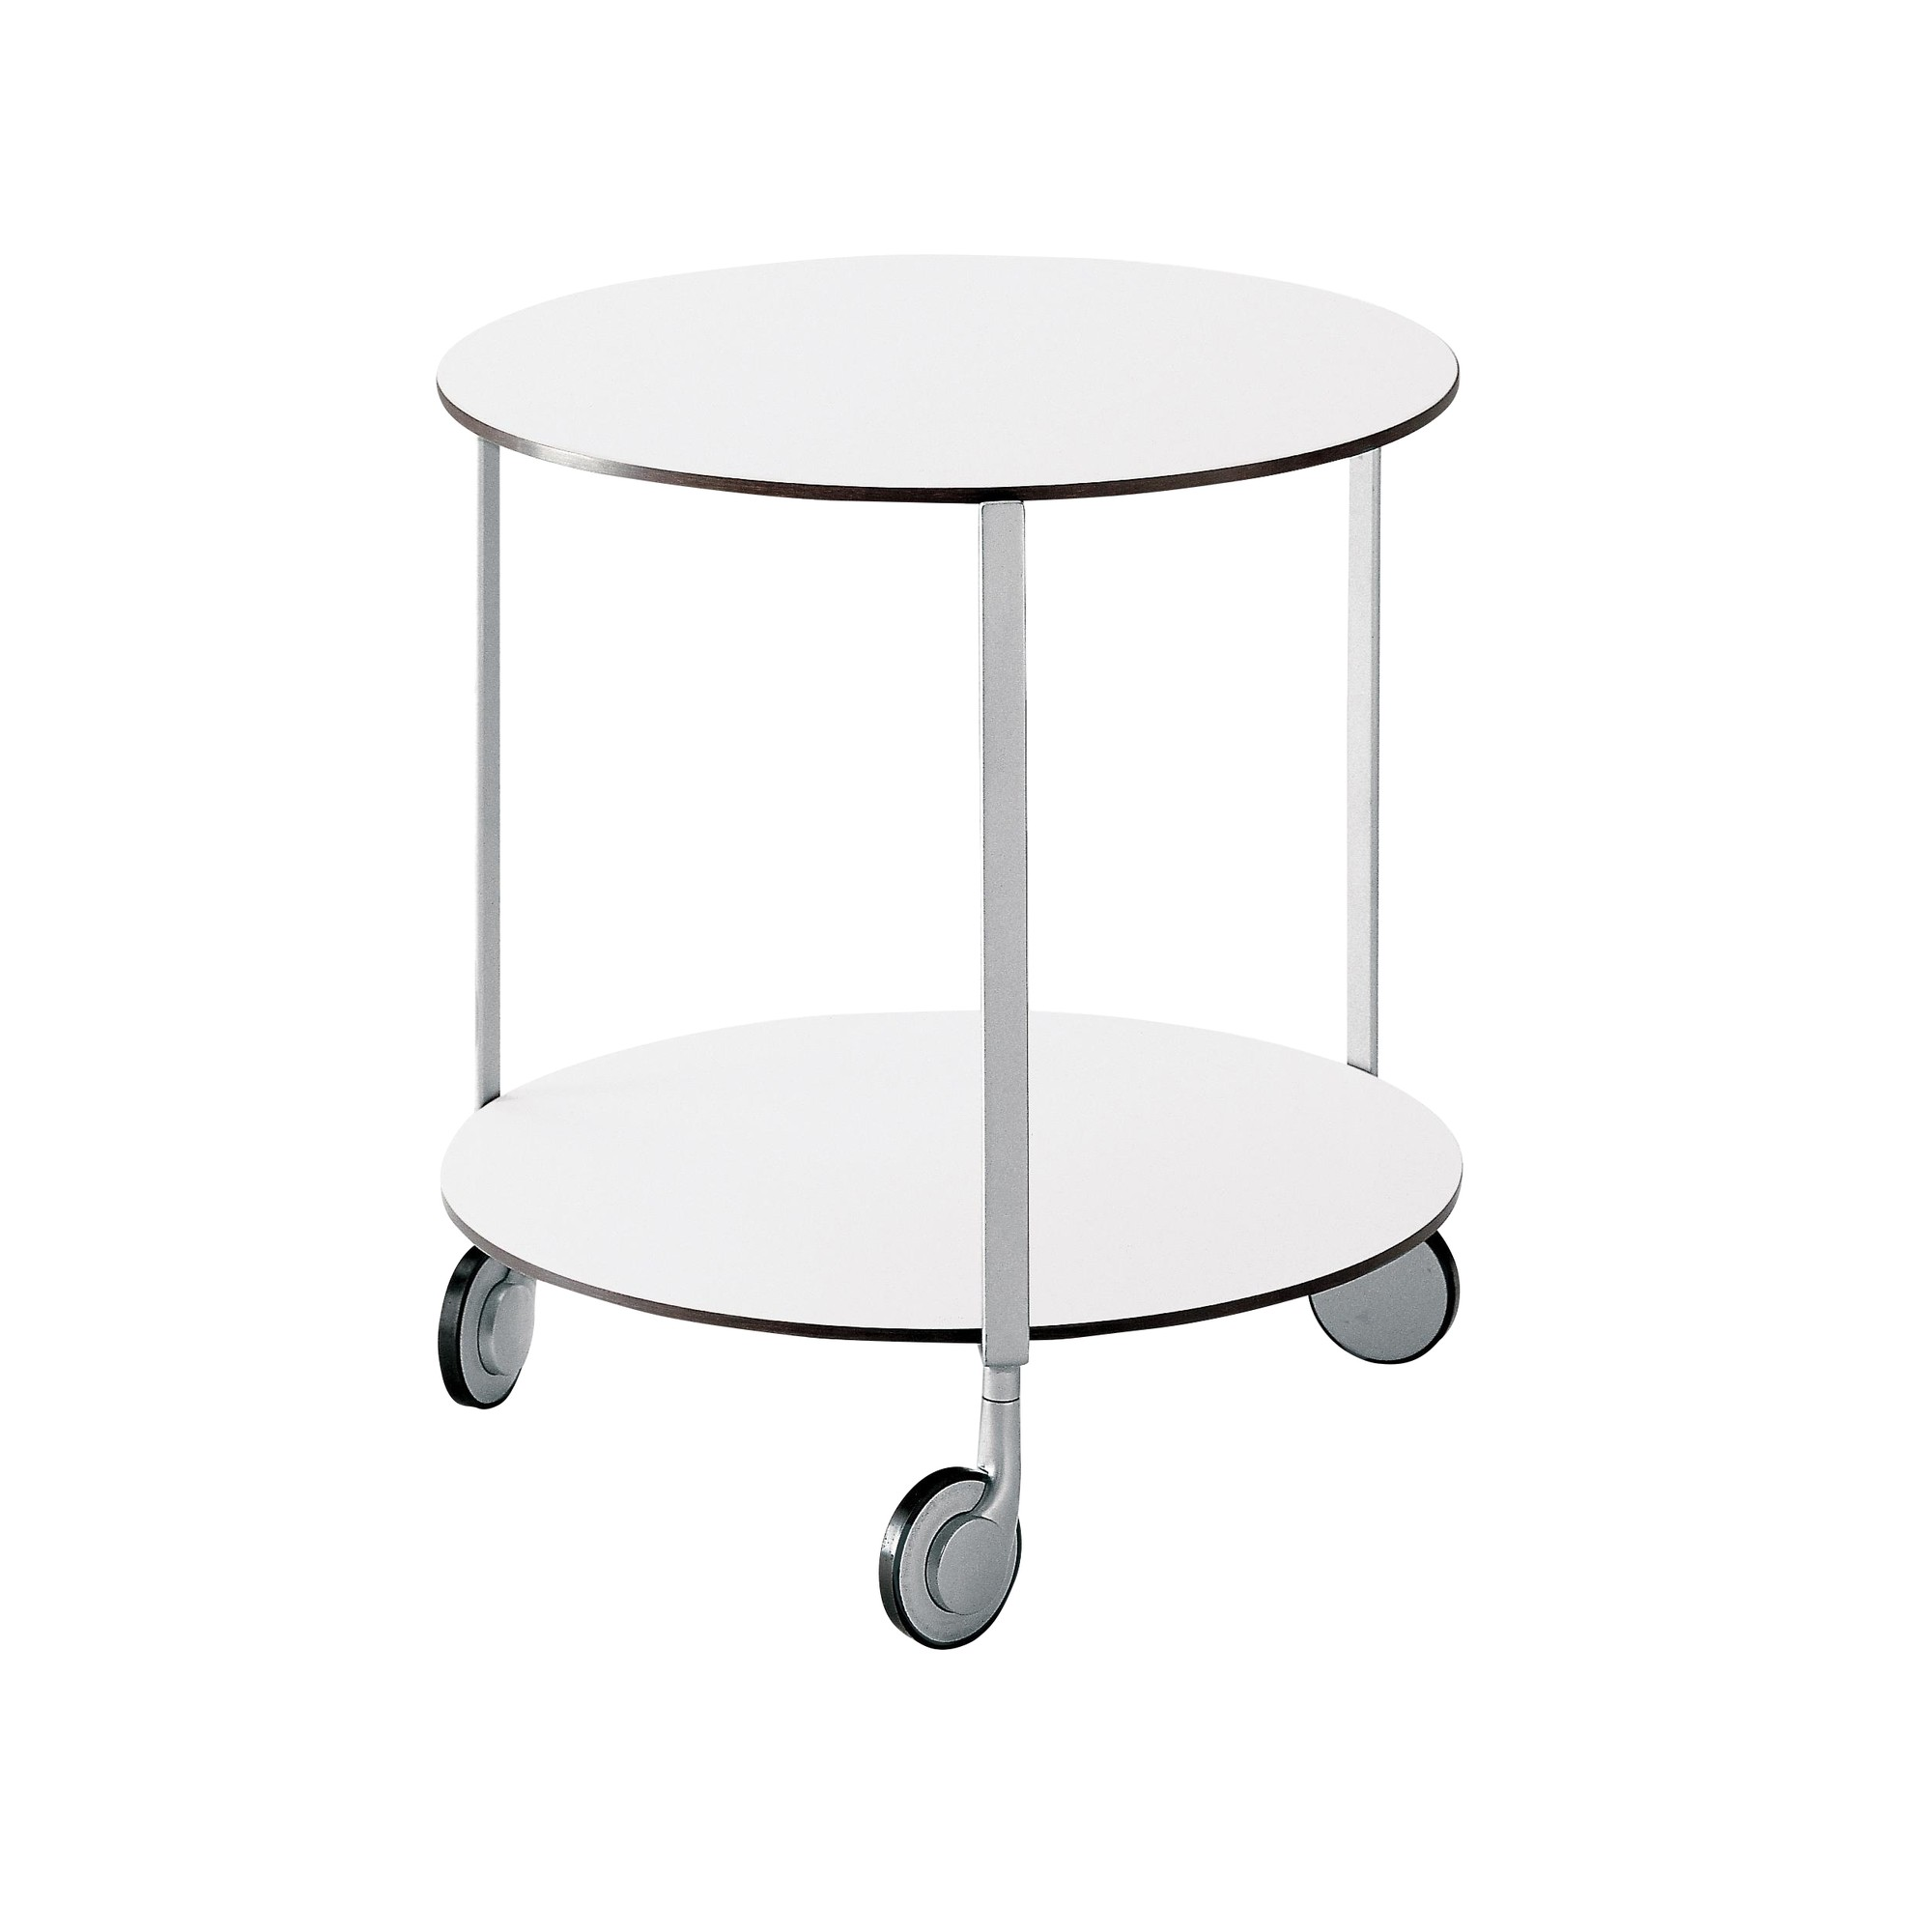 Zanotta Girò 635 Castor Mounted Table With Wheels Ambientedirect